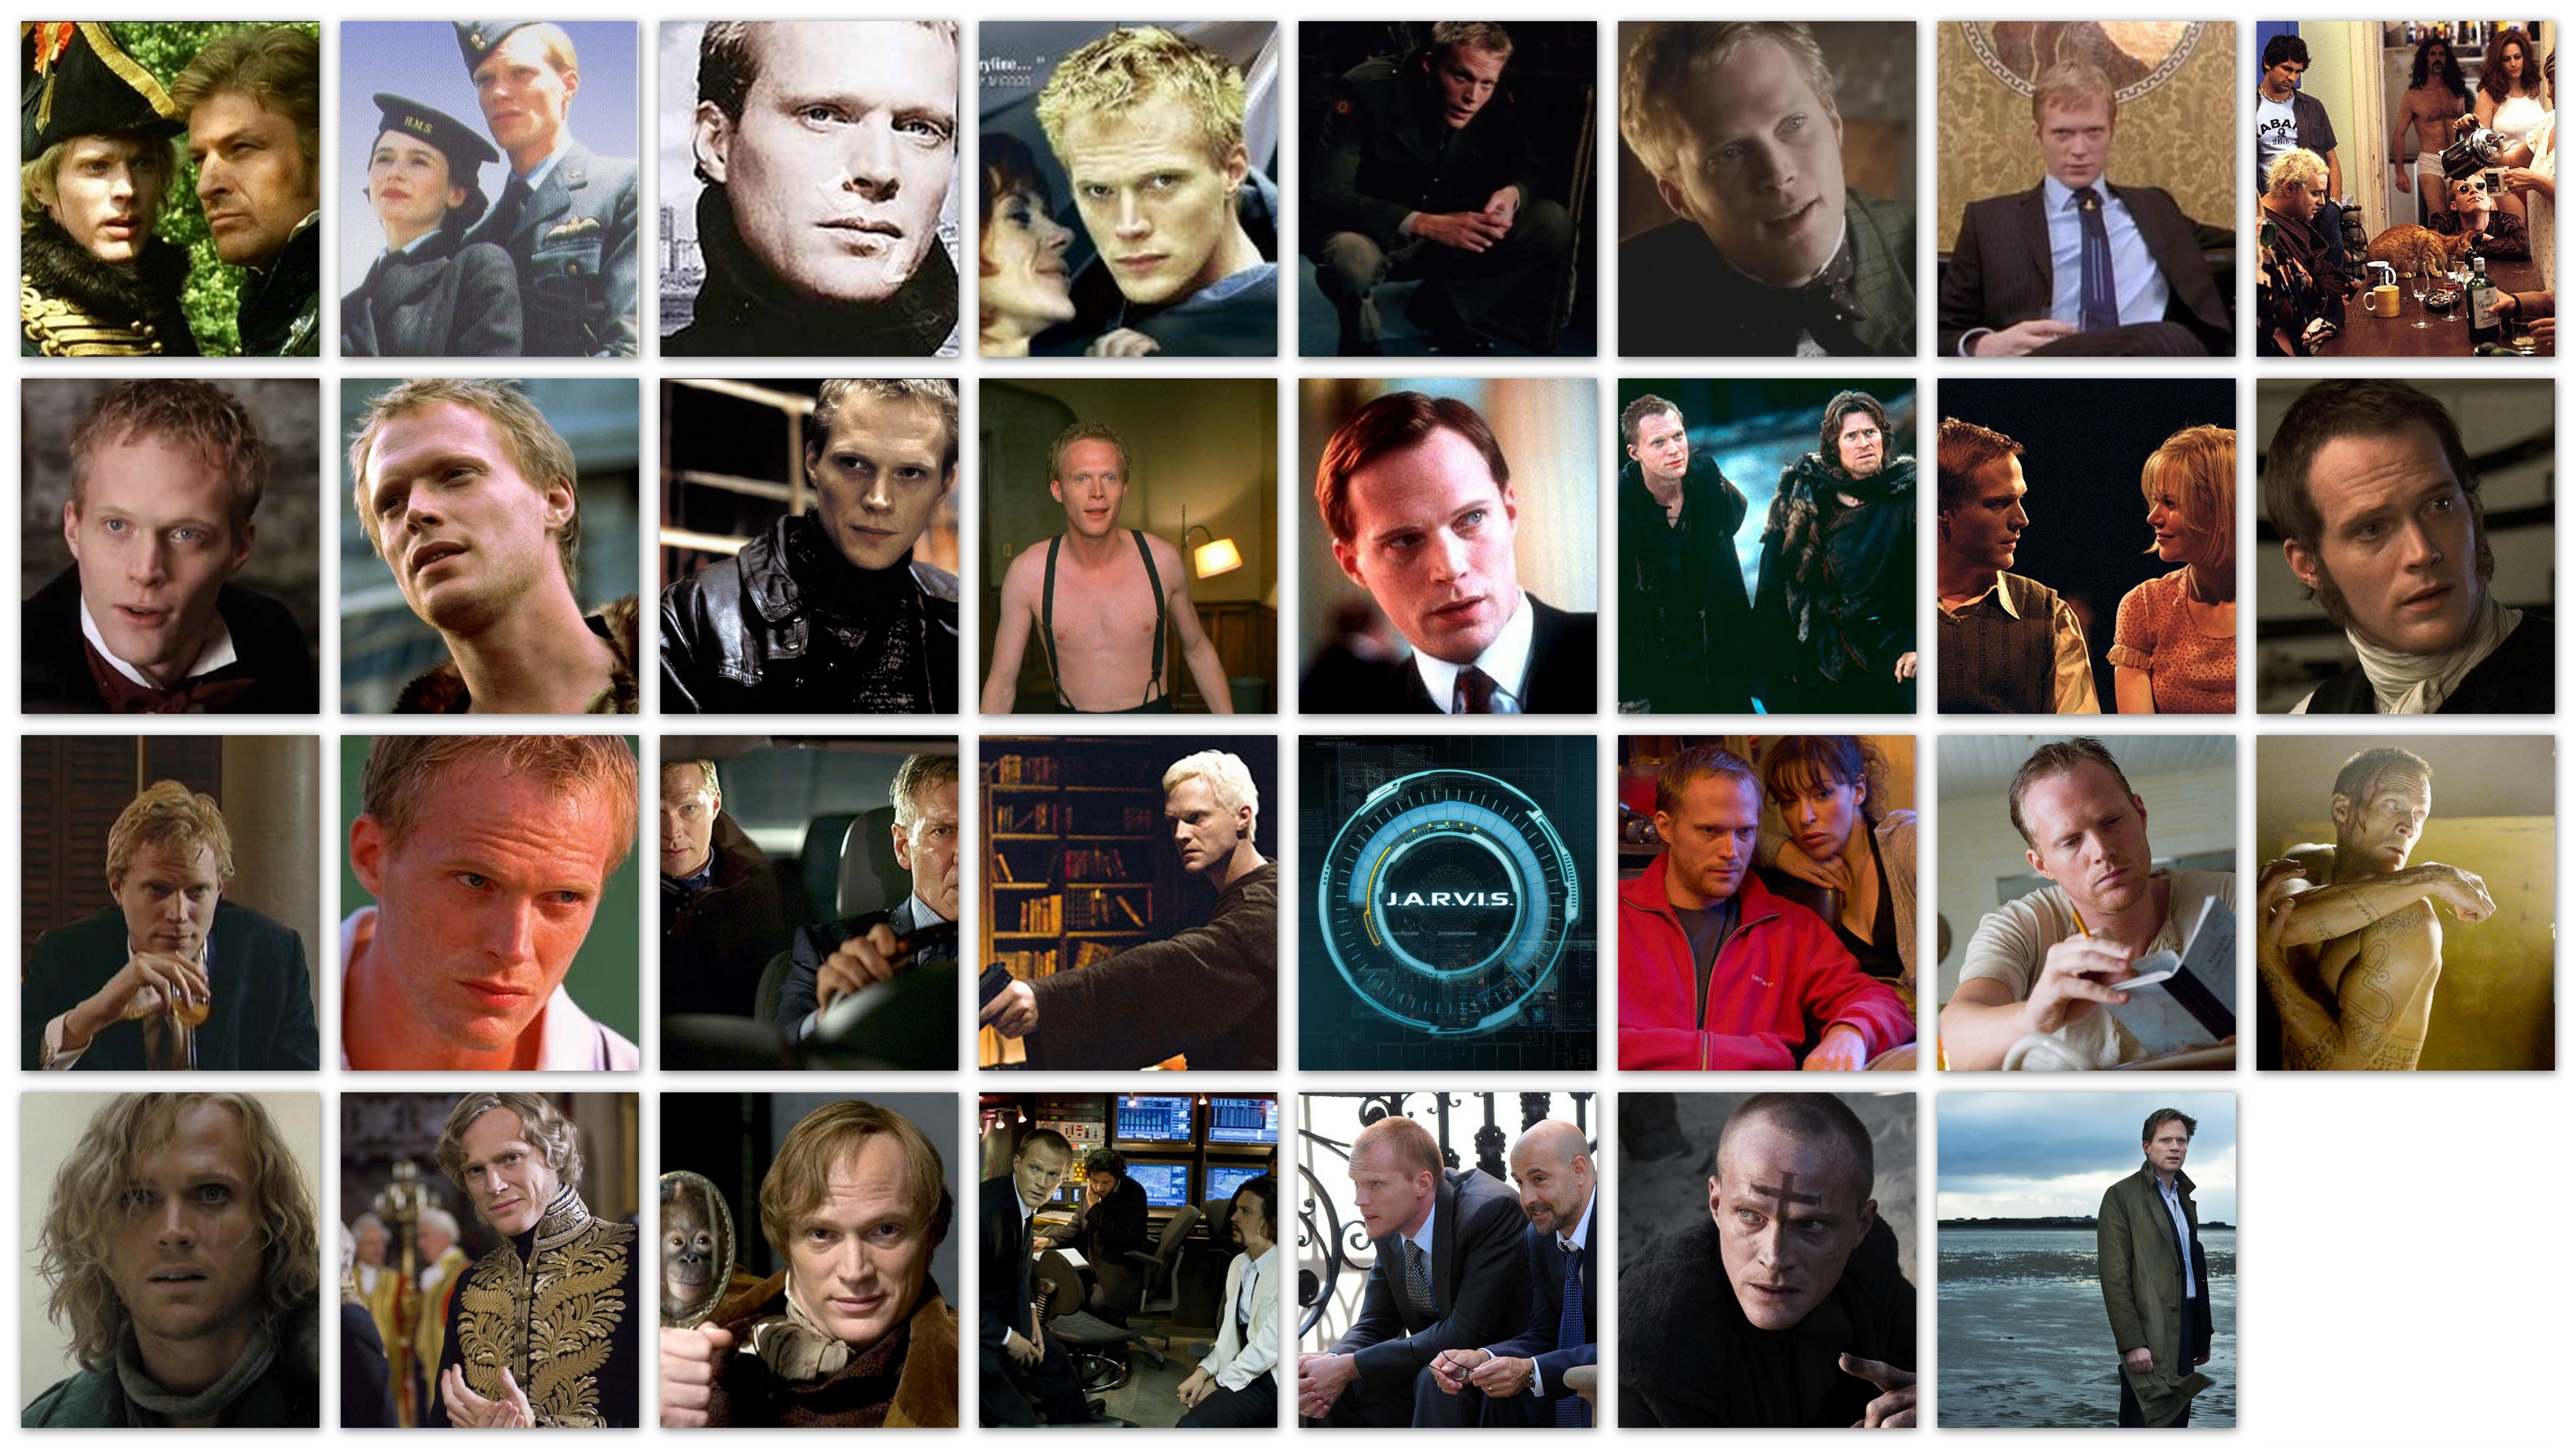 Overview of the roles of Paul Bettany in movies